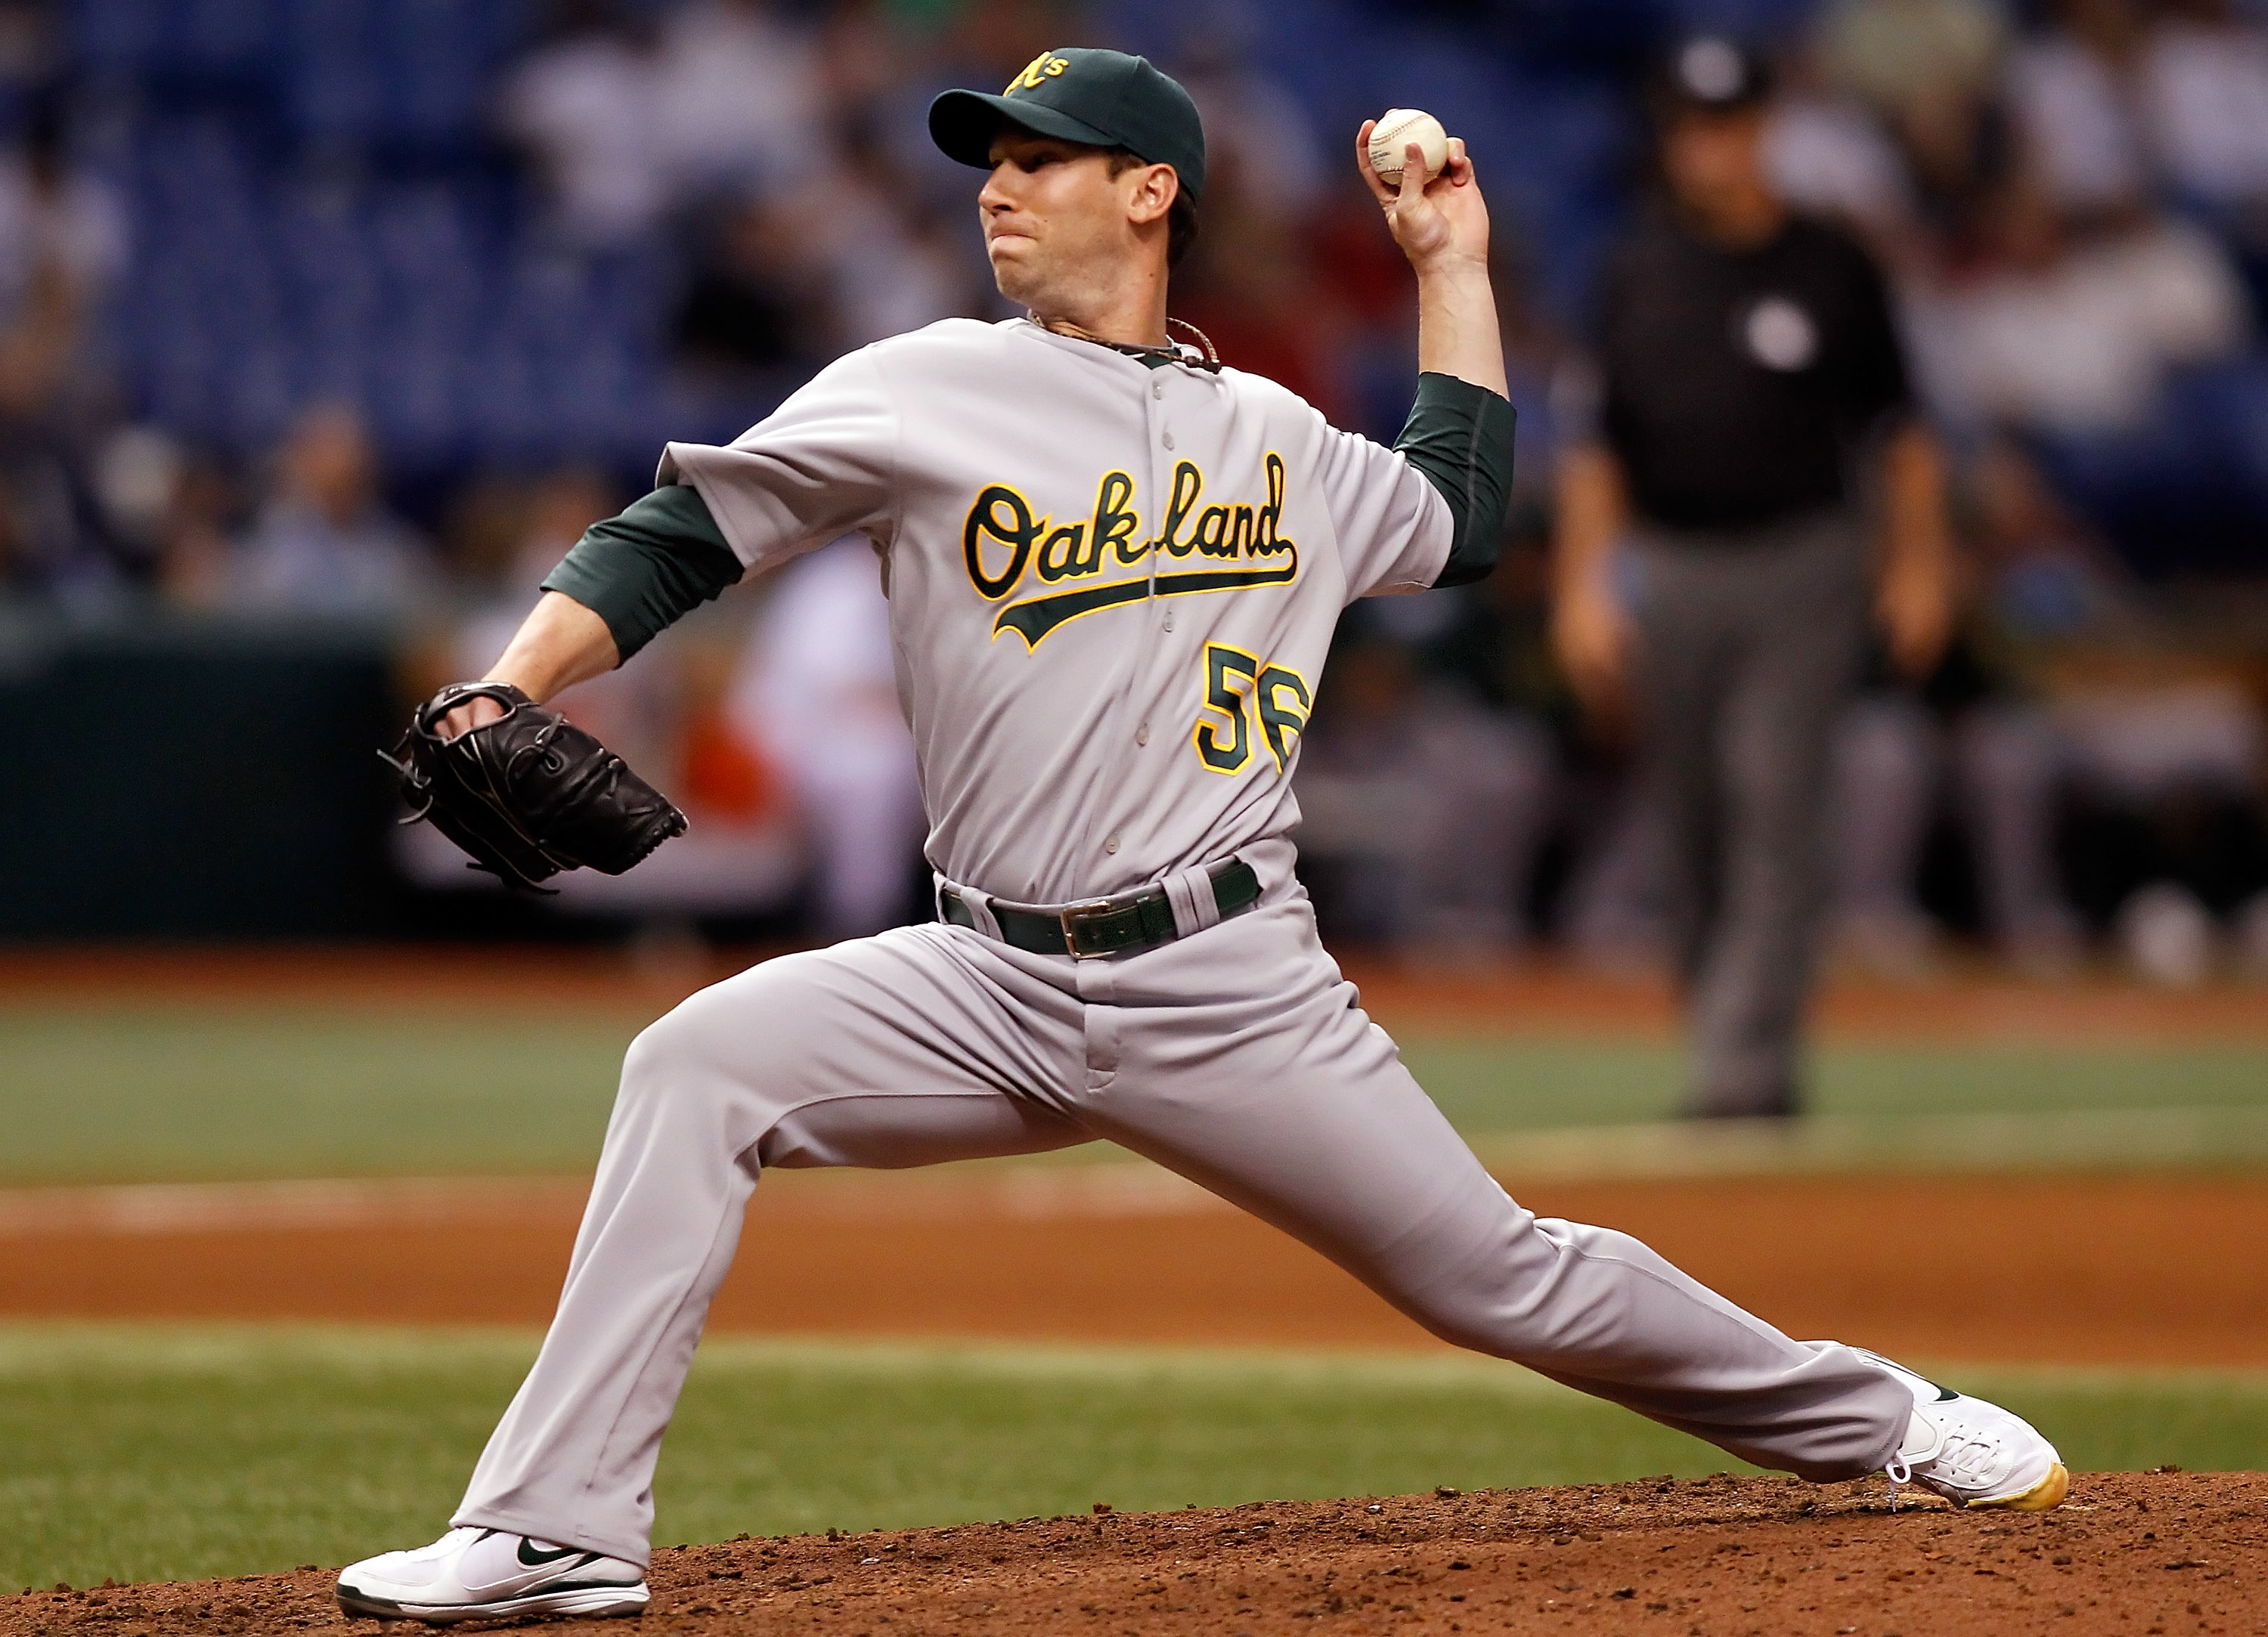 ST. PETERSBURG - APRIL 27:  Pitcher Craig Breslow #56 of the Oakland Athletics pitches against the Tampa Bay Rays during the game at Tropicana Field on April 27, 2010 in St. Petersburg, Florida.  (Photo by J. Meric/Getty Images)